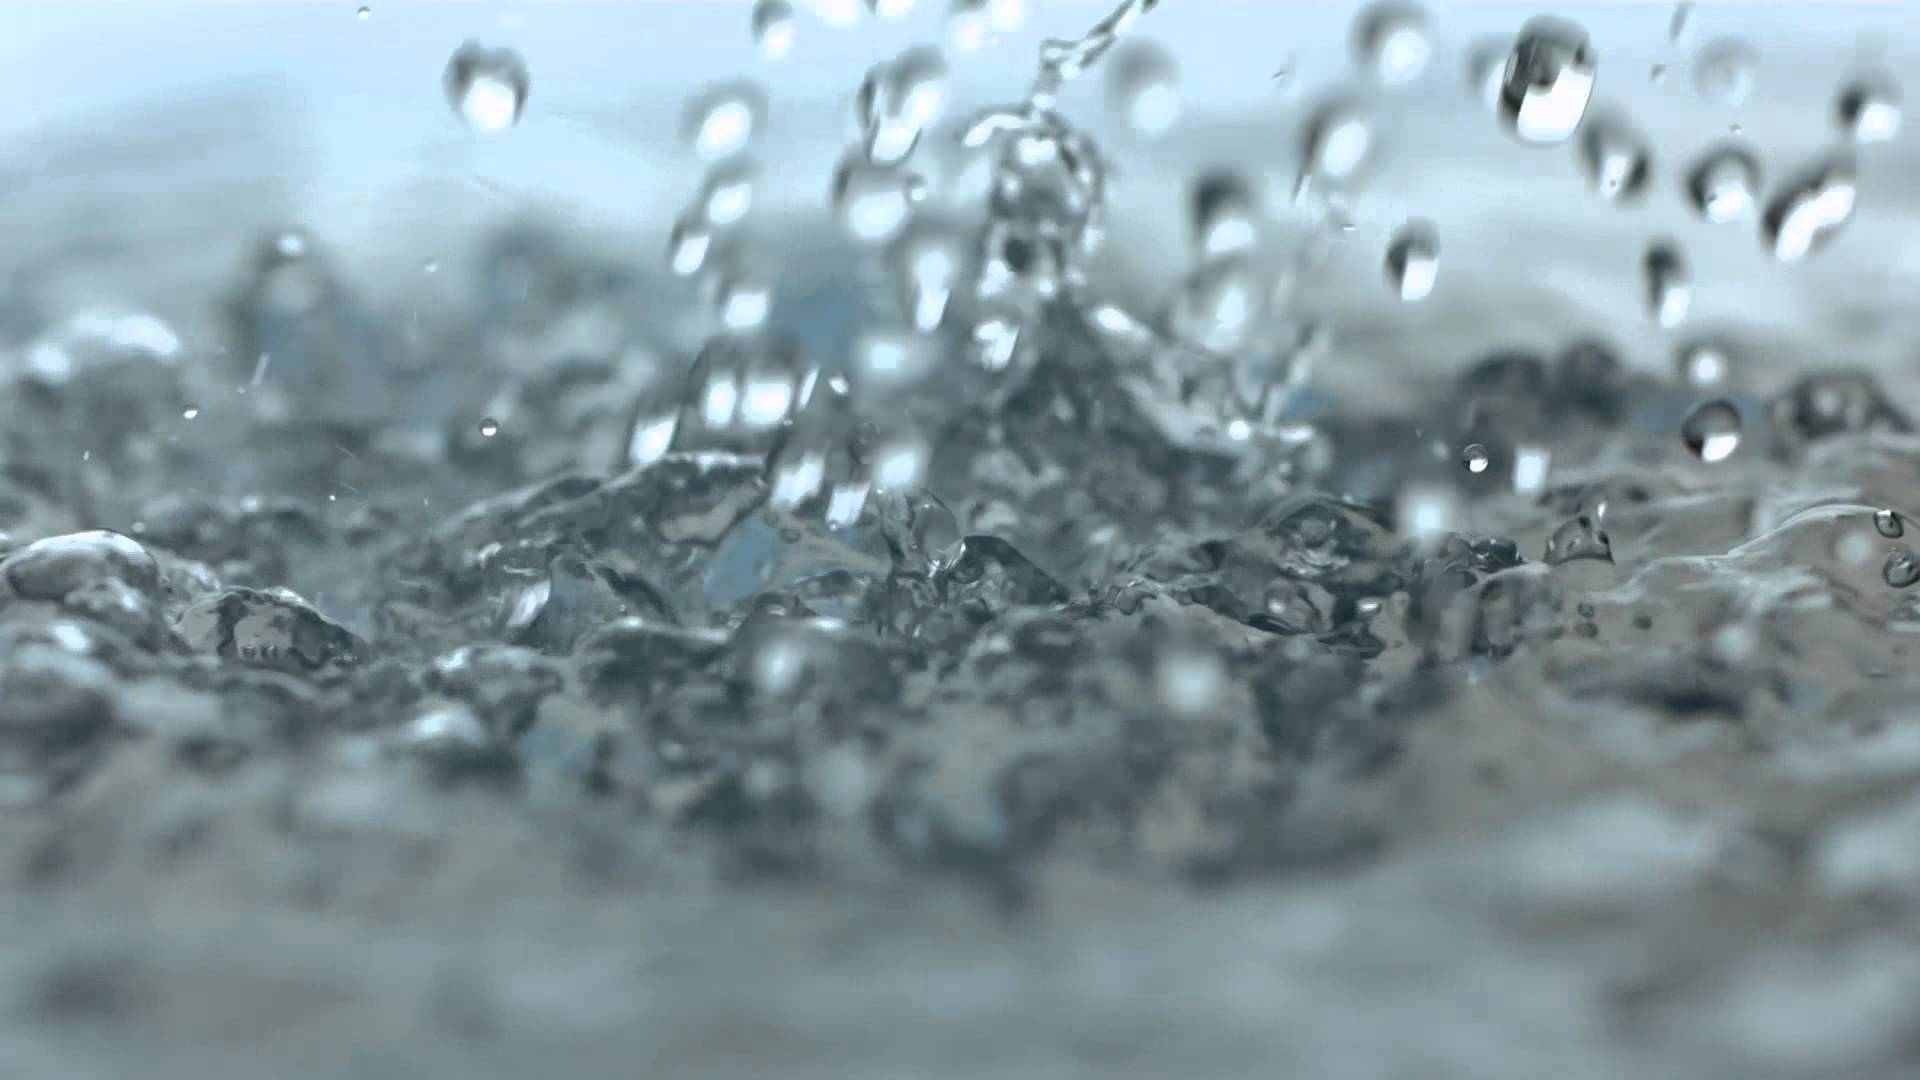 Rainfall Slow Motion HD Heavy Rain Drops Falling in Slow Mo Video ...